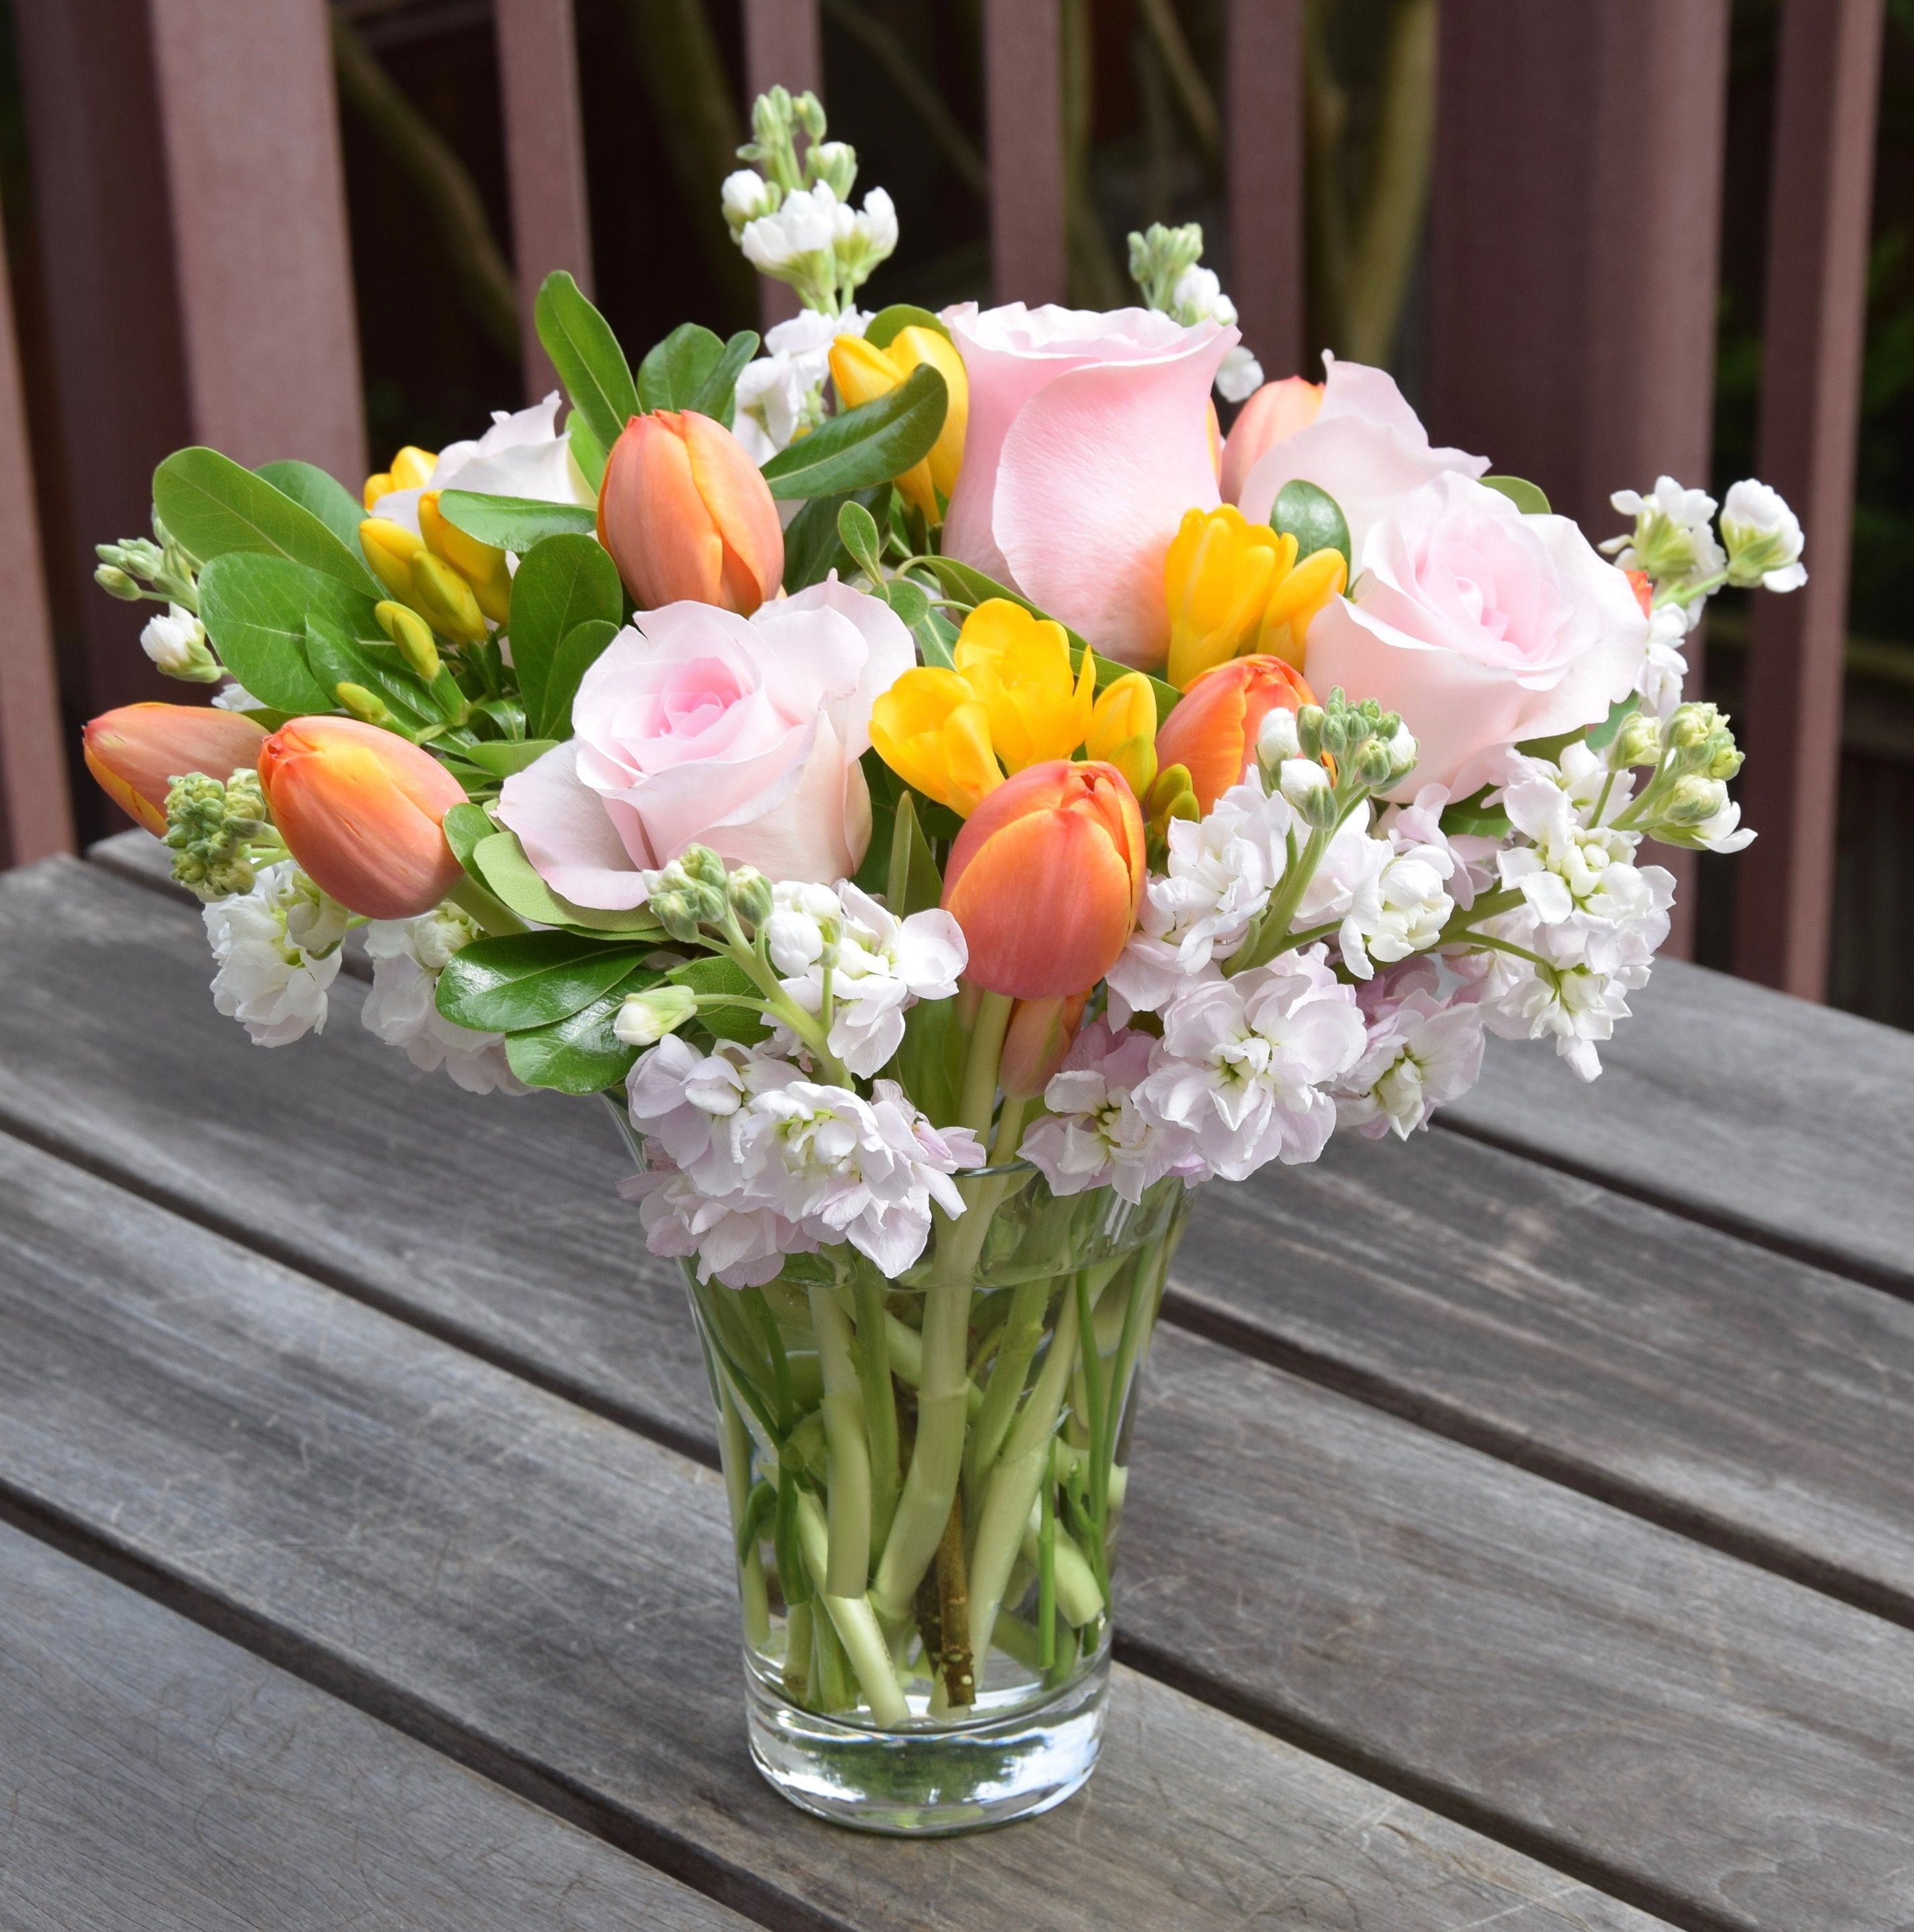 Mother S Day Flower Arrangement With Stock Roses Freesia And Tulips White Flower Arrangements Rose Floral Arrangements Fresh Flowers Arrangements